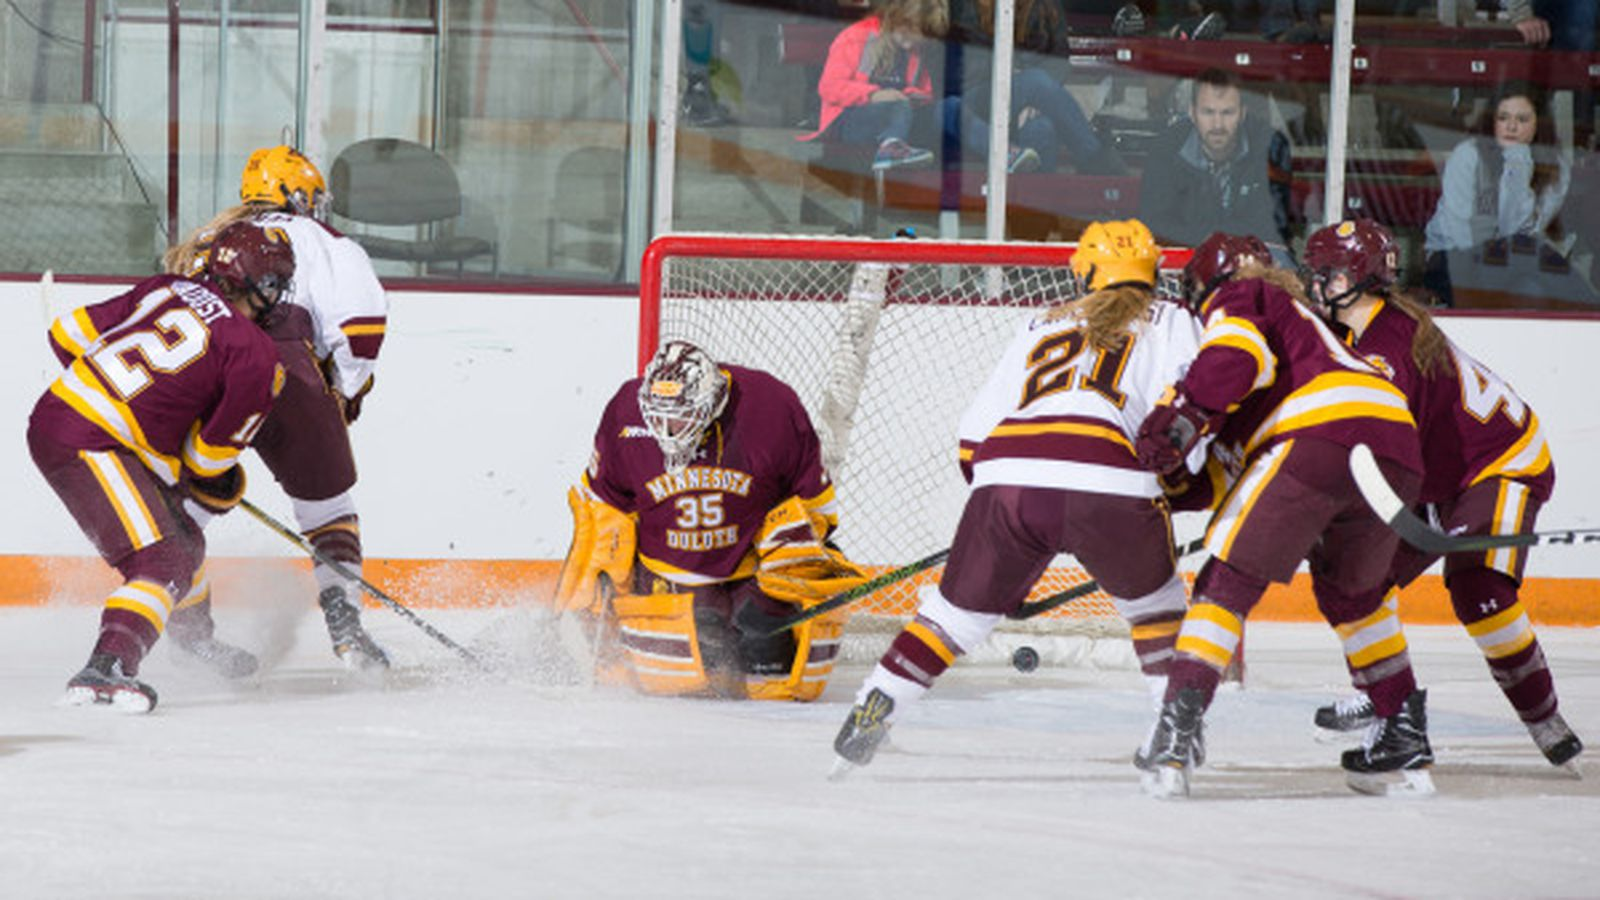 umd bulldog hockey tickets minnesota women s hockey gophers will play at umd in ncaa 1512